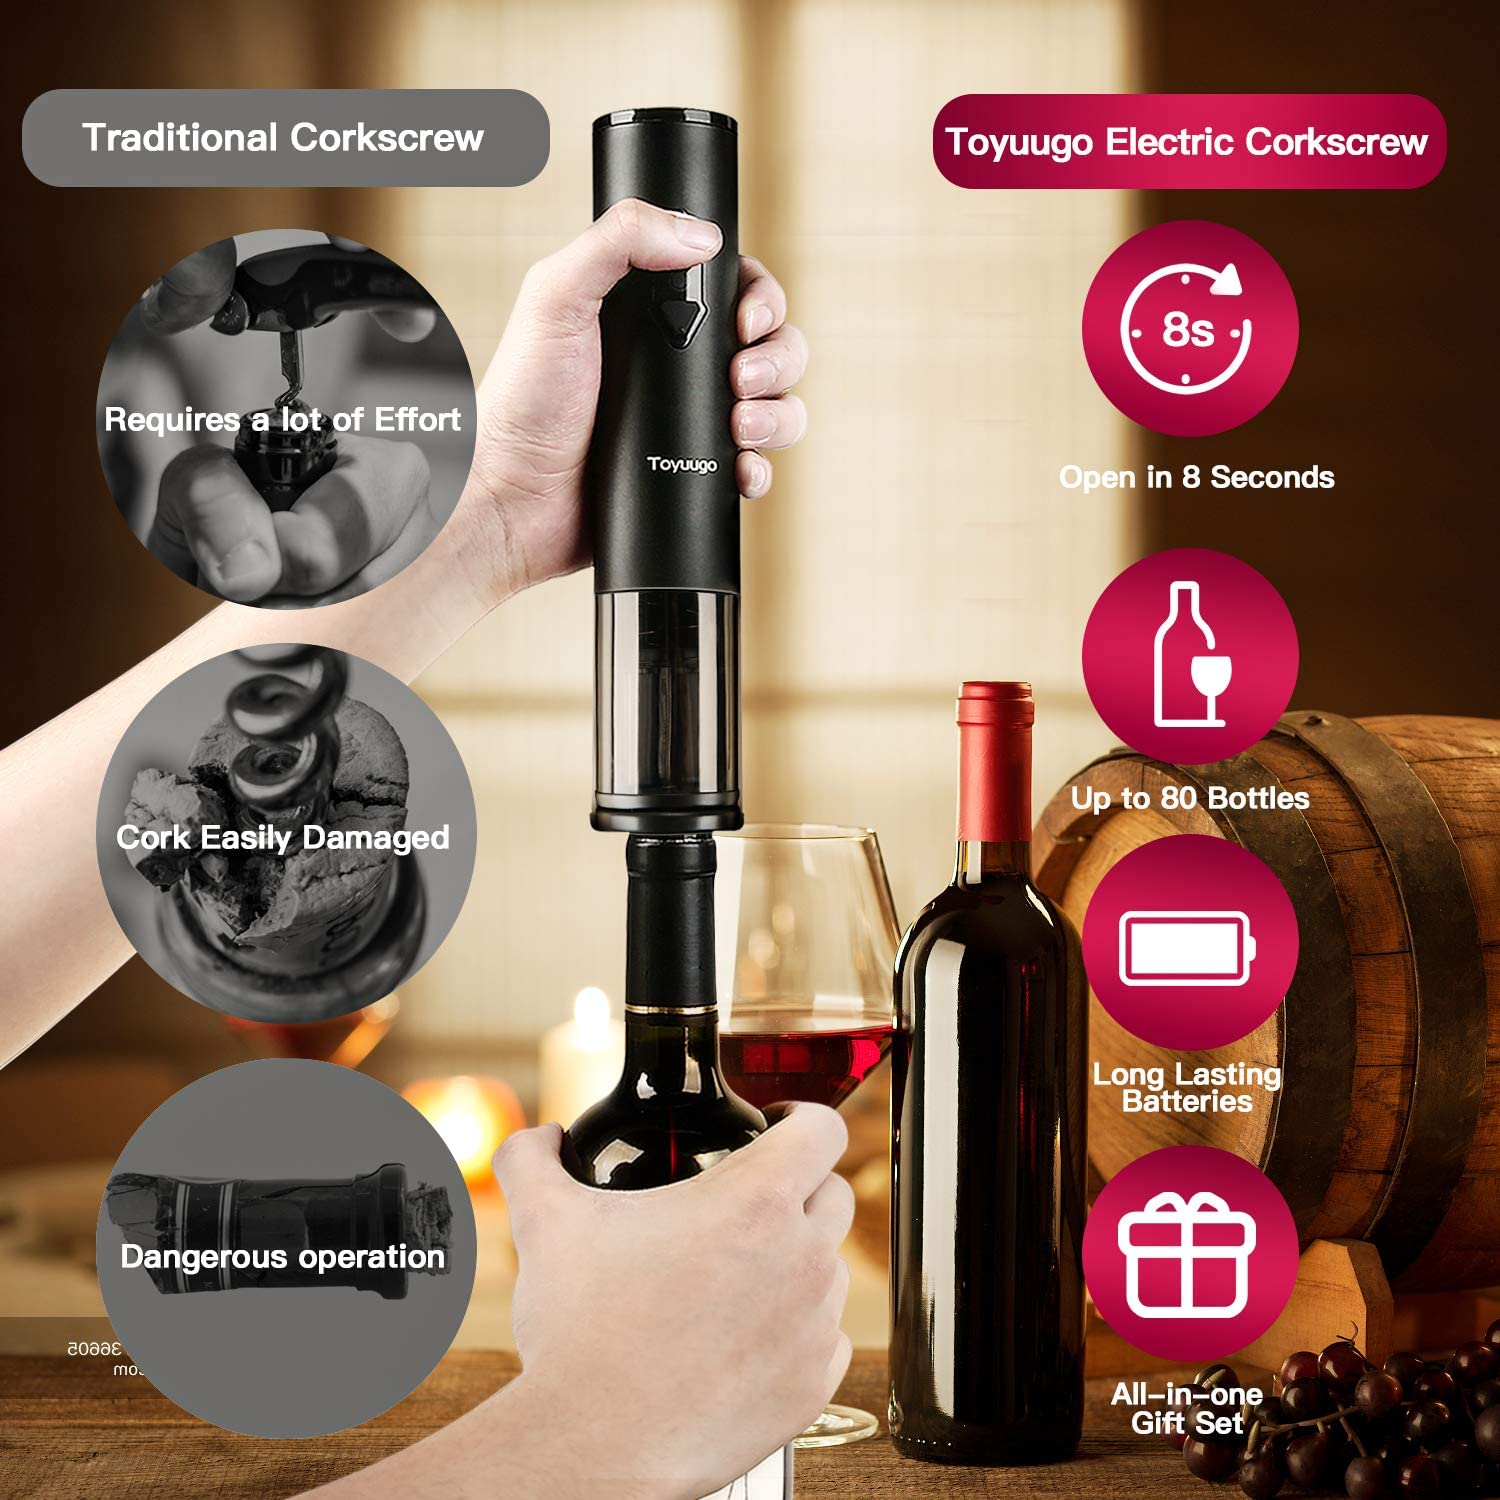 Toyuugo Electric Wine Opener Party and Wine lover 3 Piece Gift Set Automatic Corkscrew set contains Foil Cutter Vacuum Stopper and Wine Aerator Pourer for Dating